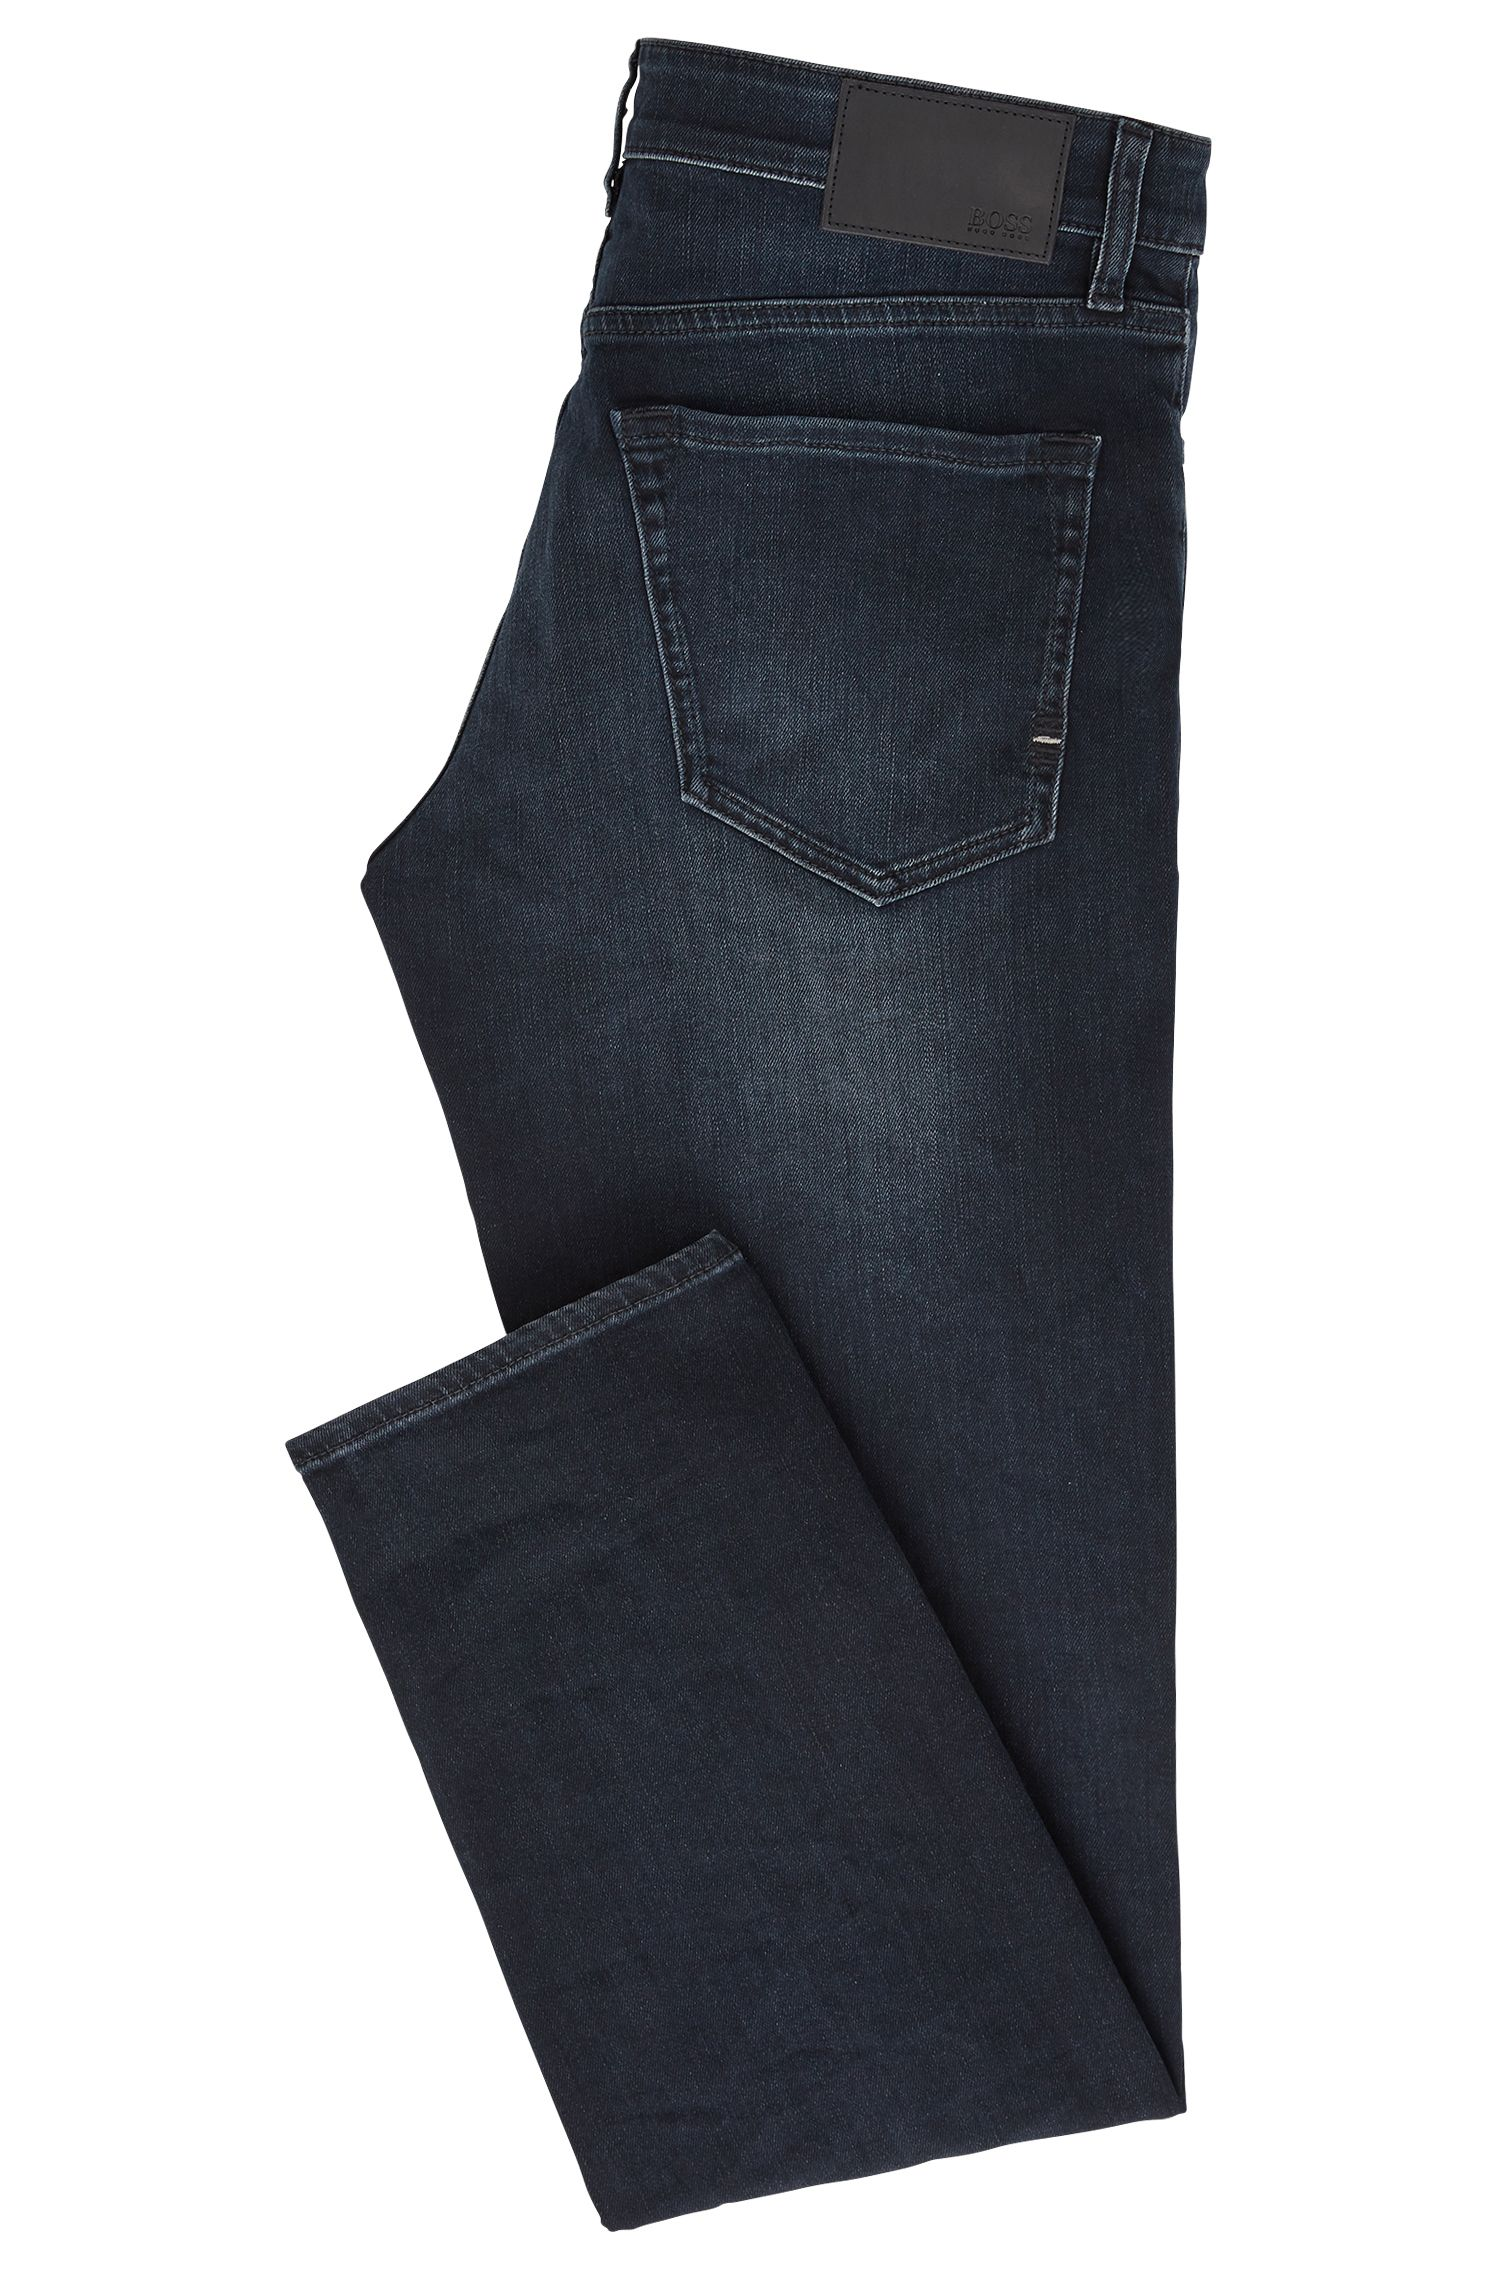 Regular-Fit Jeans aus überfärbtem Stretch-Denim, Dunkelblau